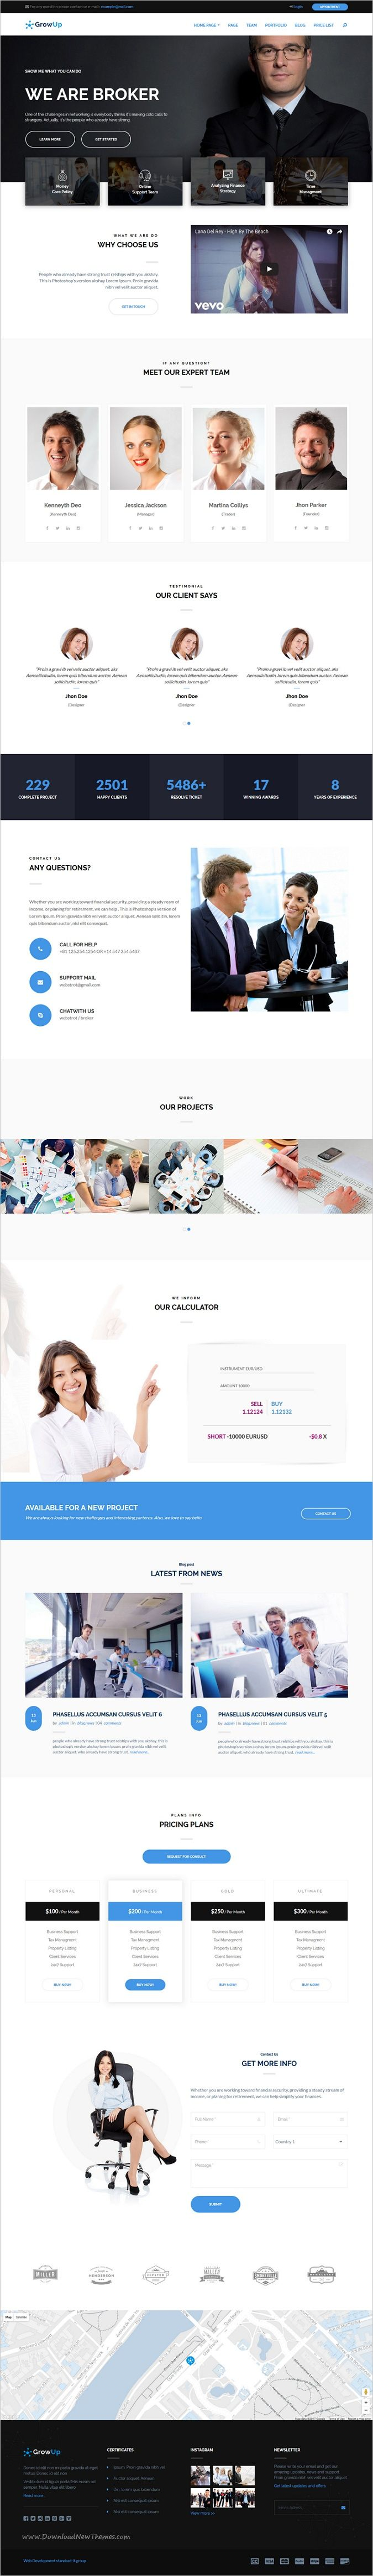 GrowUp is a modern design 6in1 professional #WordPress theme for #broker #insurance, business and financial websites download now➩ https://themeforest.net/item/growup-business-financial-wordpress-theme/18761663?ref=Datasata